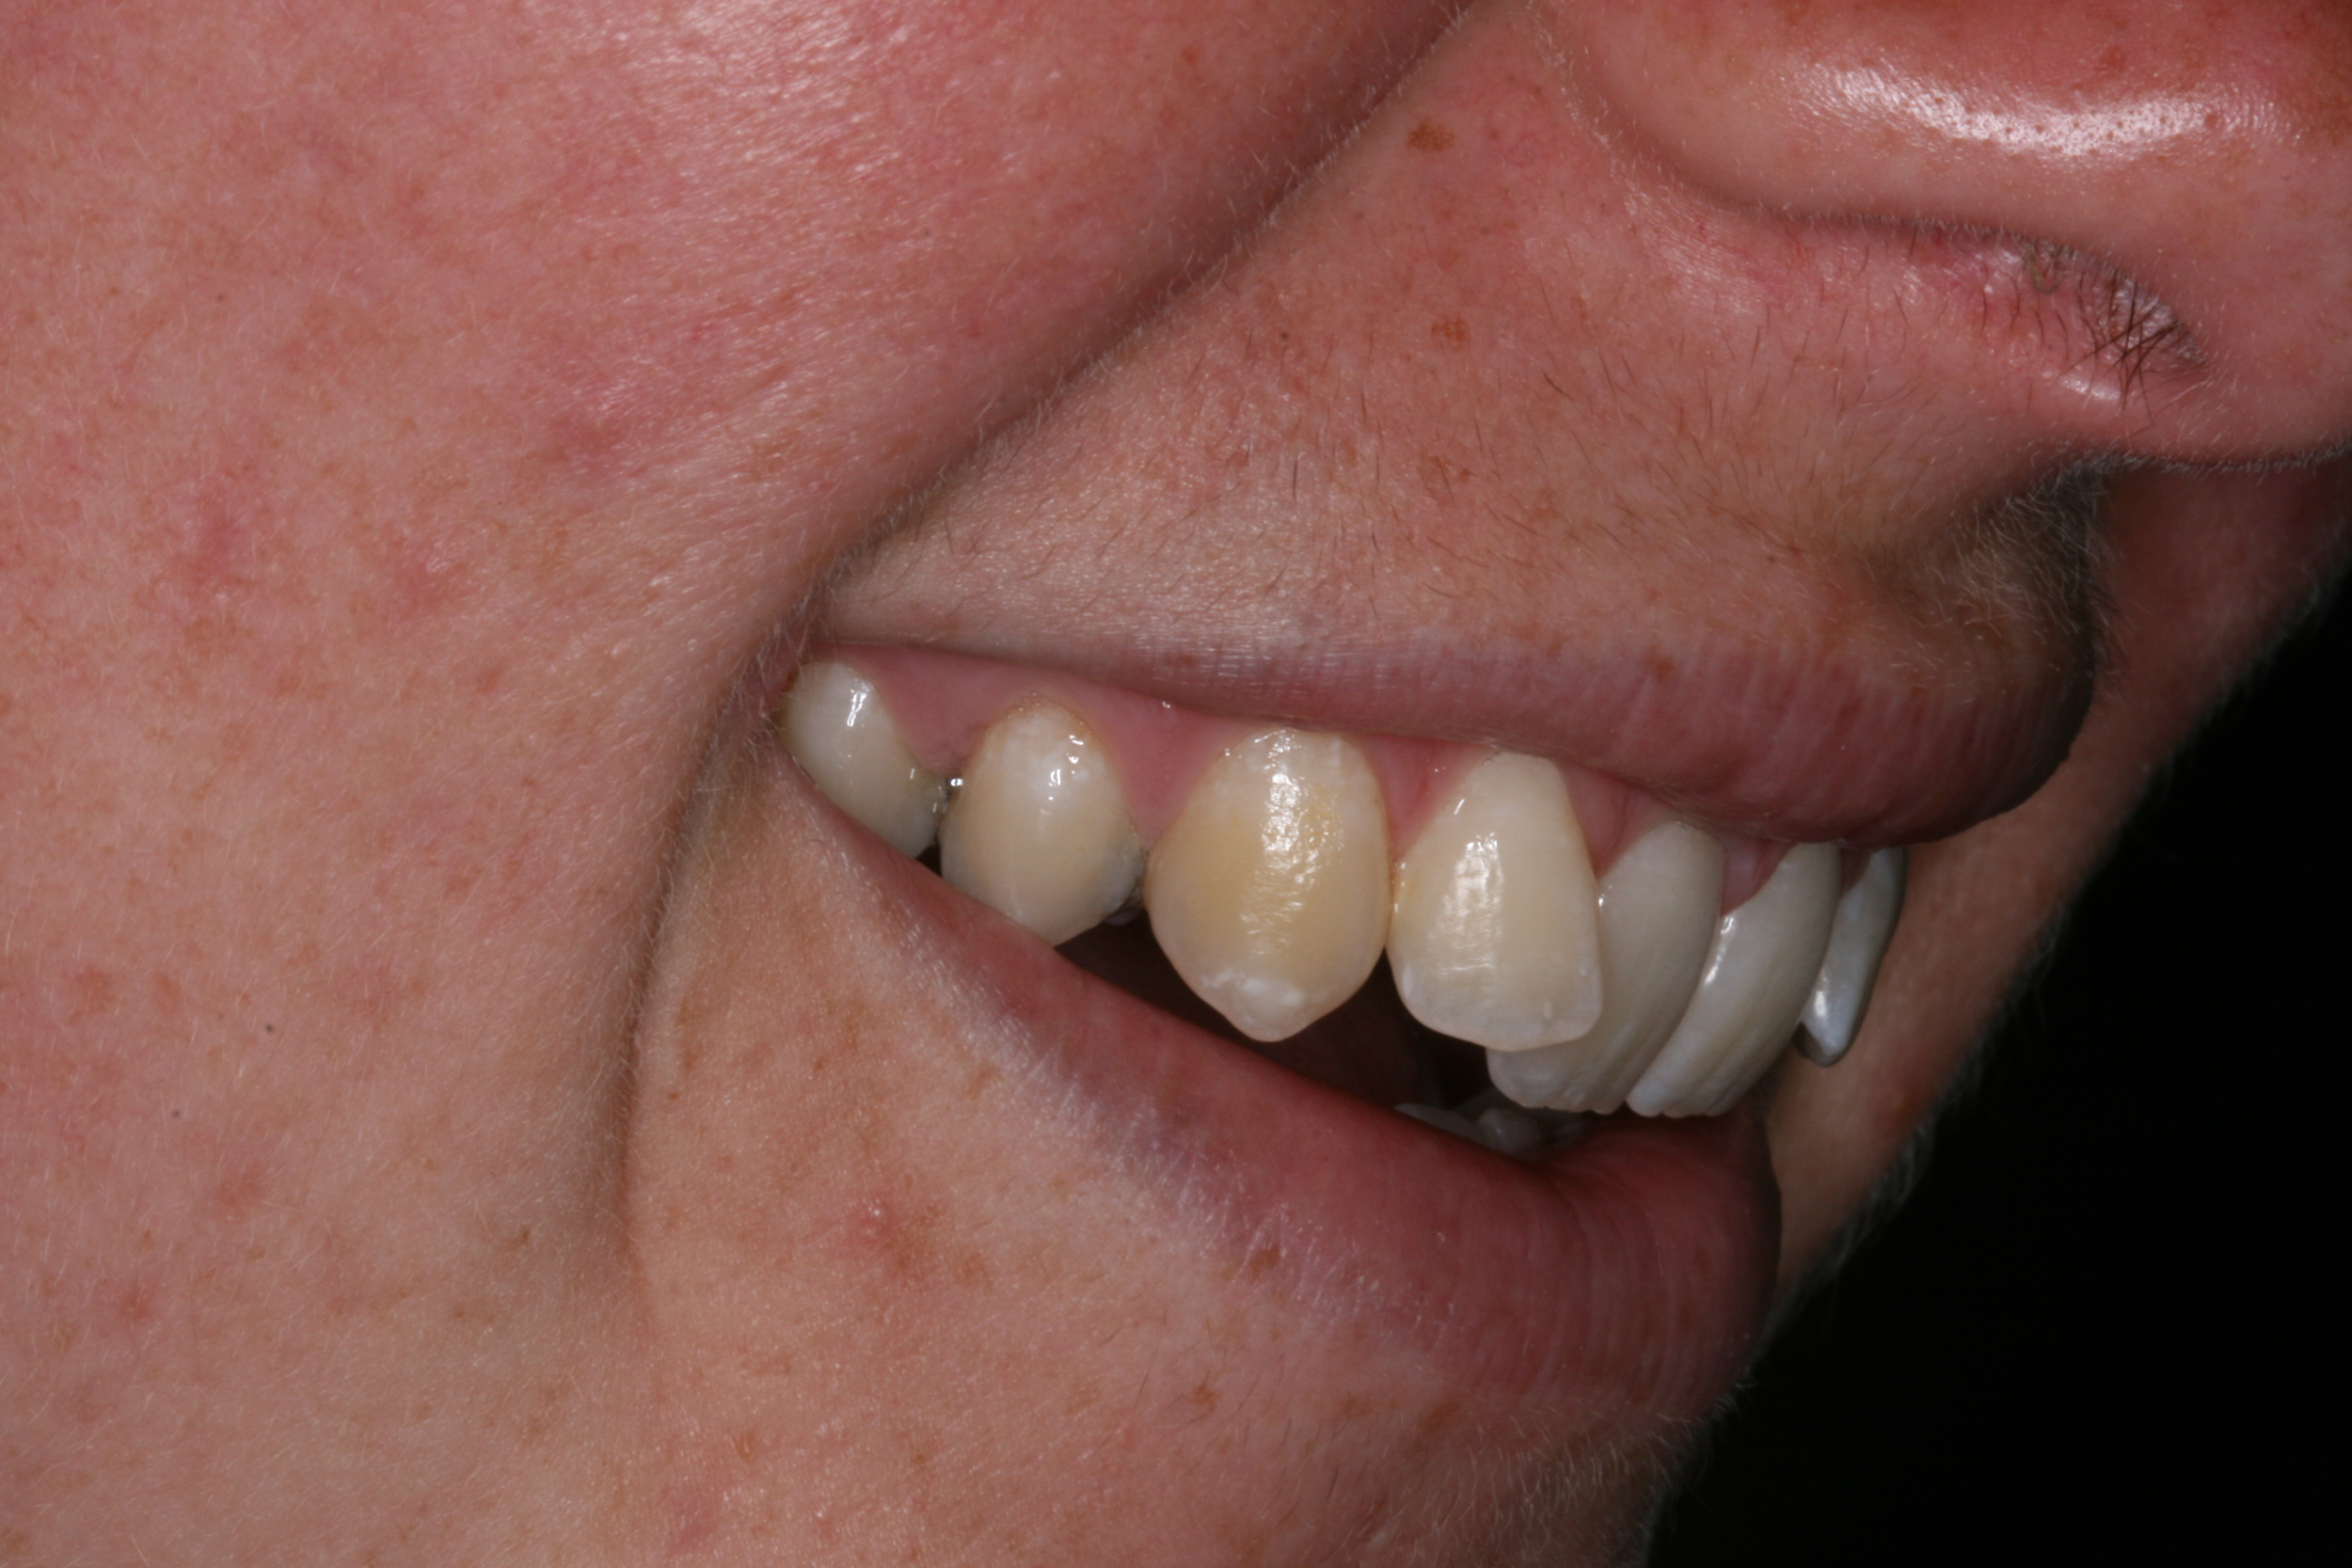 The_Tuddenham_Road_Dental_Surgery_Clear_Aligners5.JPG